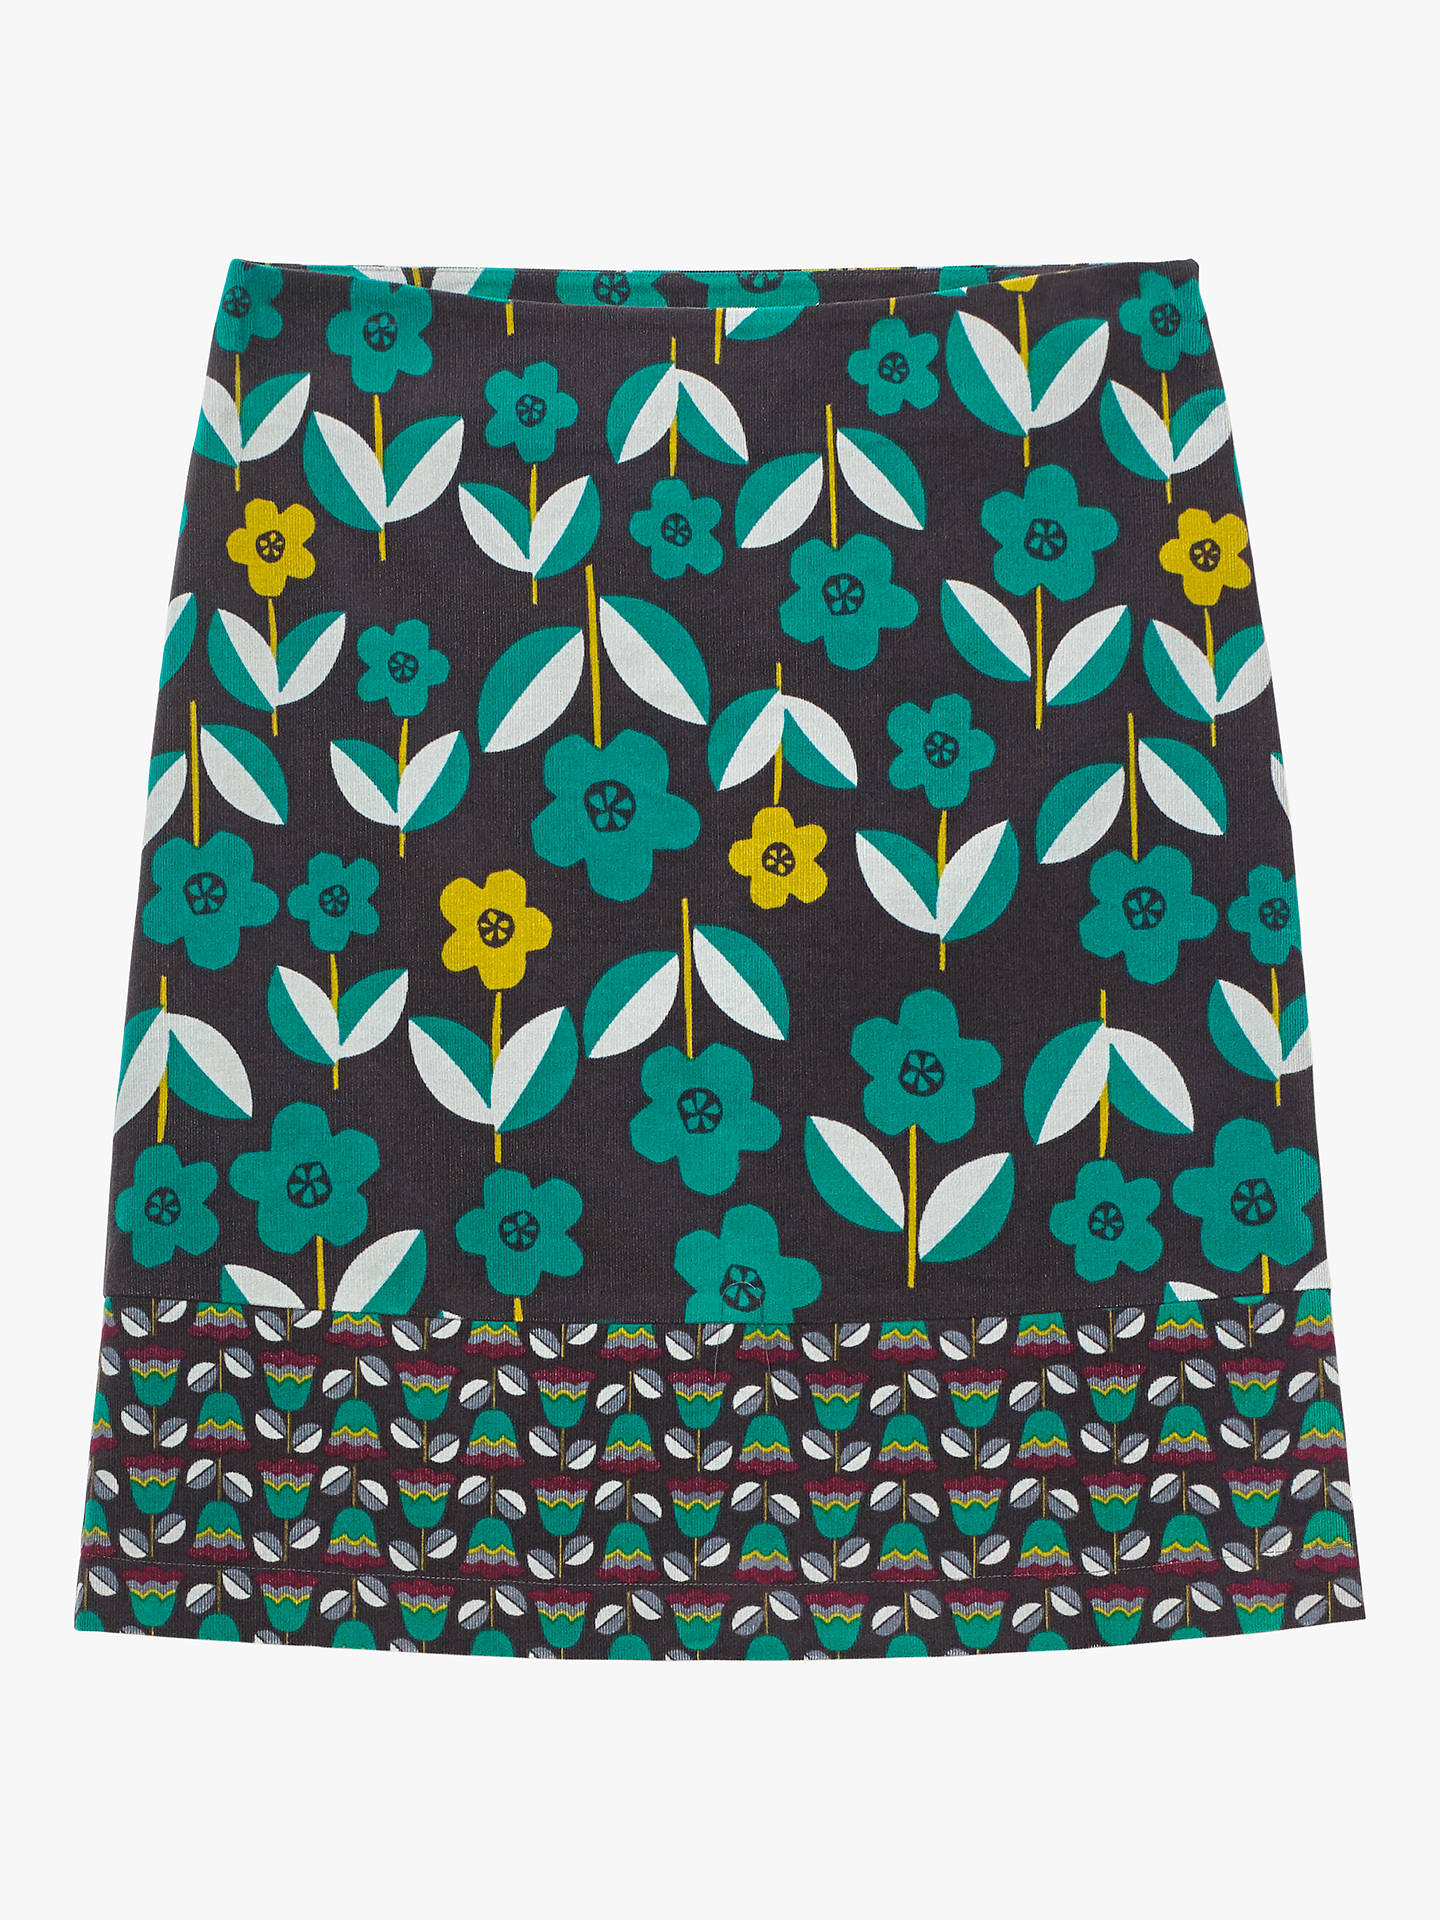 White Stuff Flower Patch Skirt